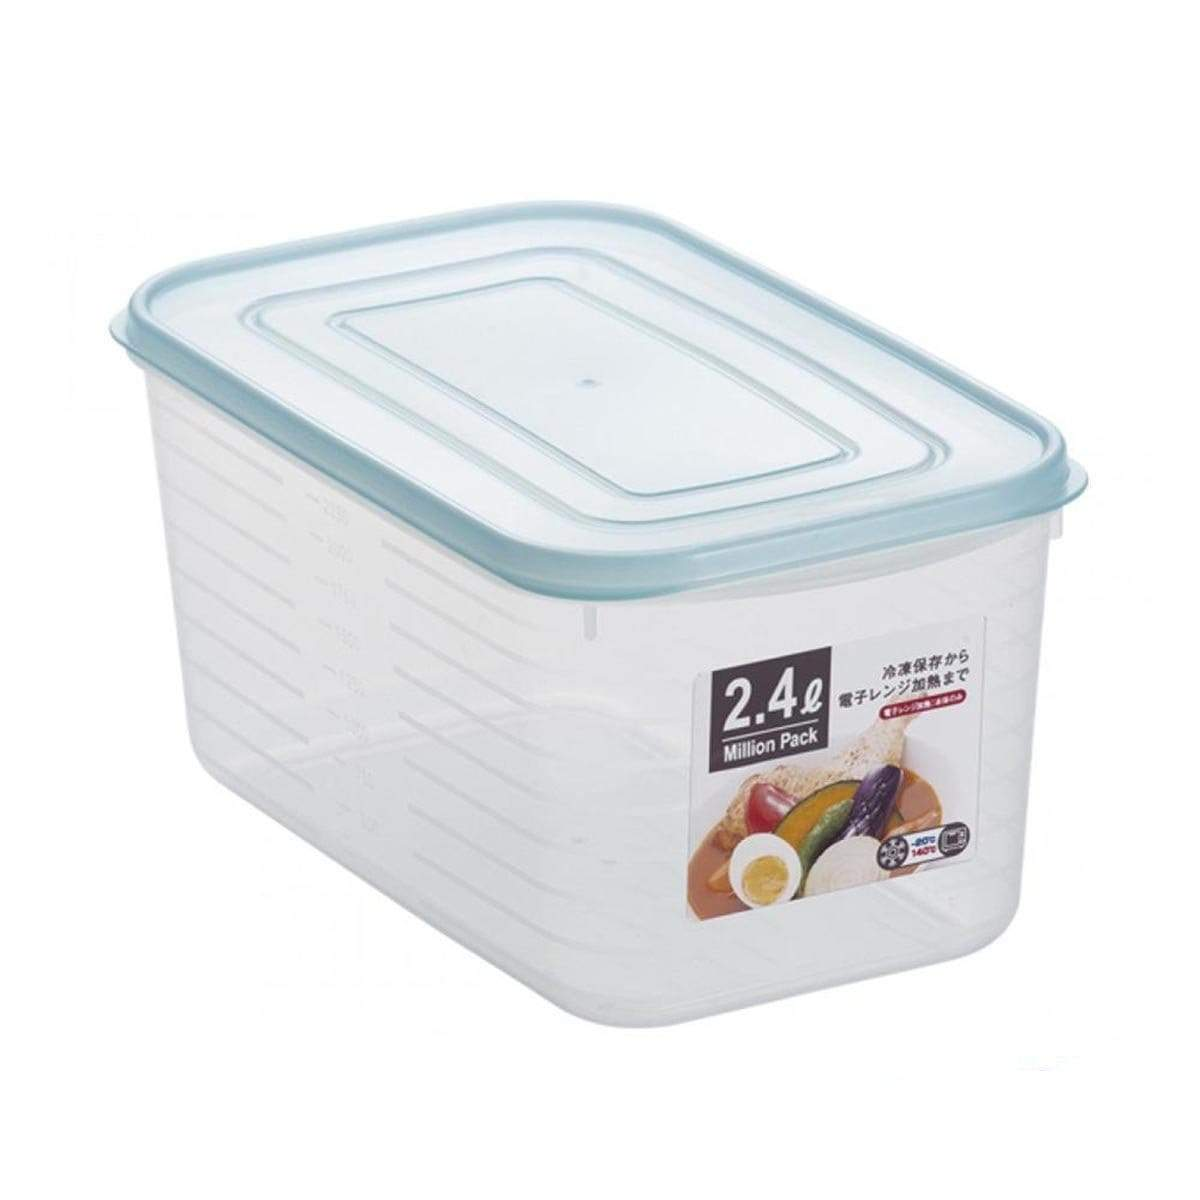 Japanese Plastic Large Square Food Pack Container Box 2400 Blue